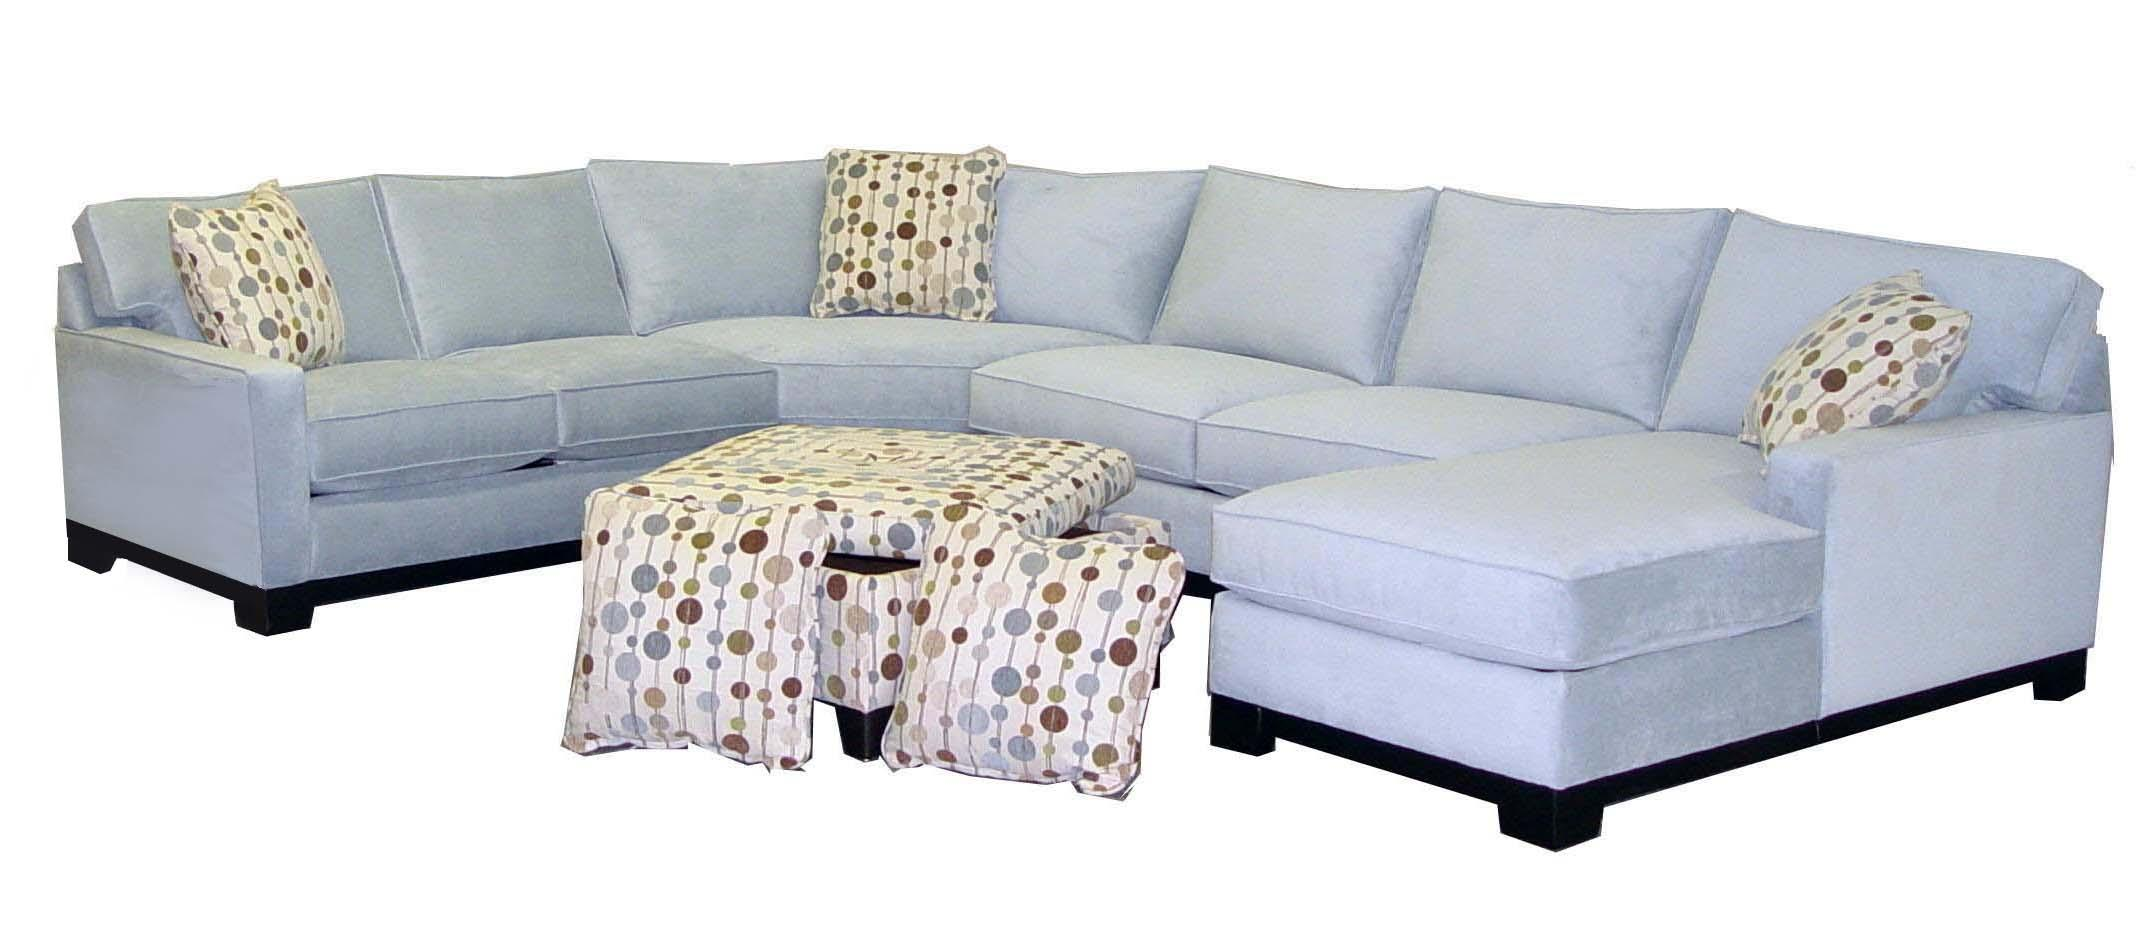 Gemini 4-Piece Sectional by Jonathan Louis at Fashion Furniture